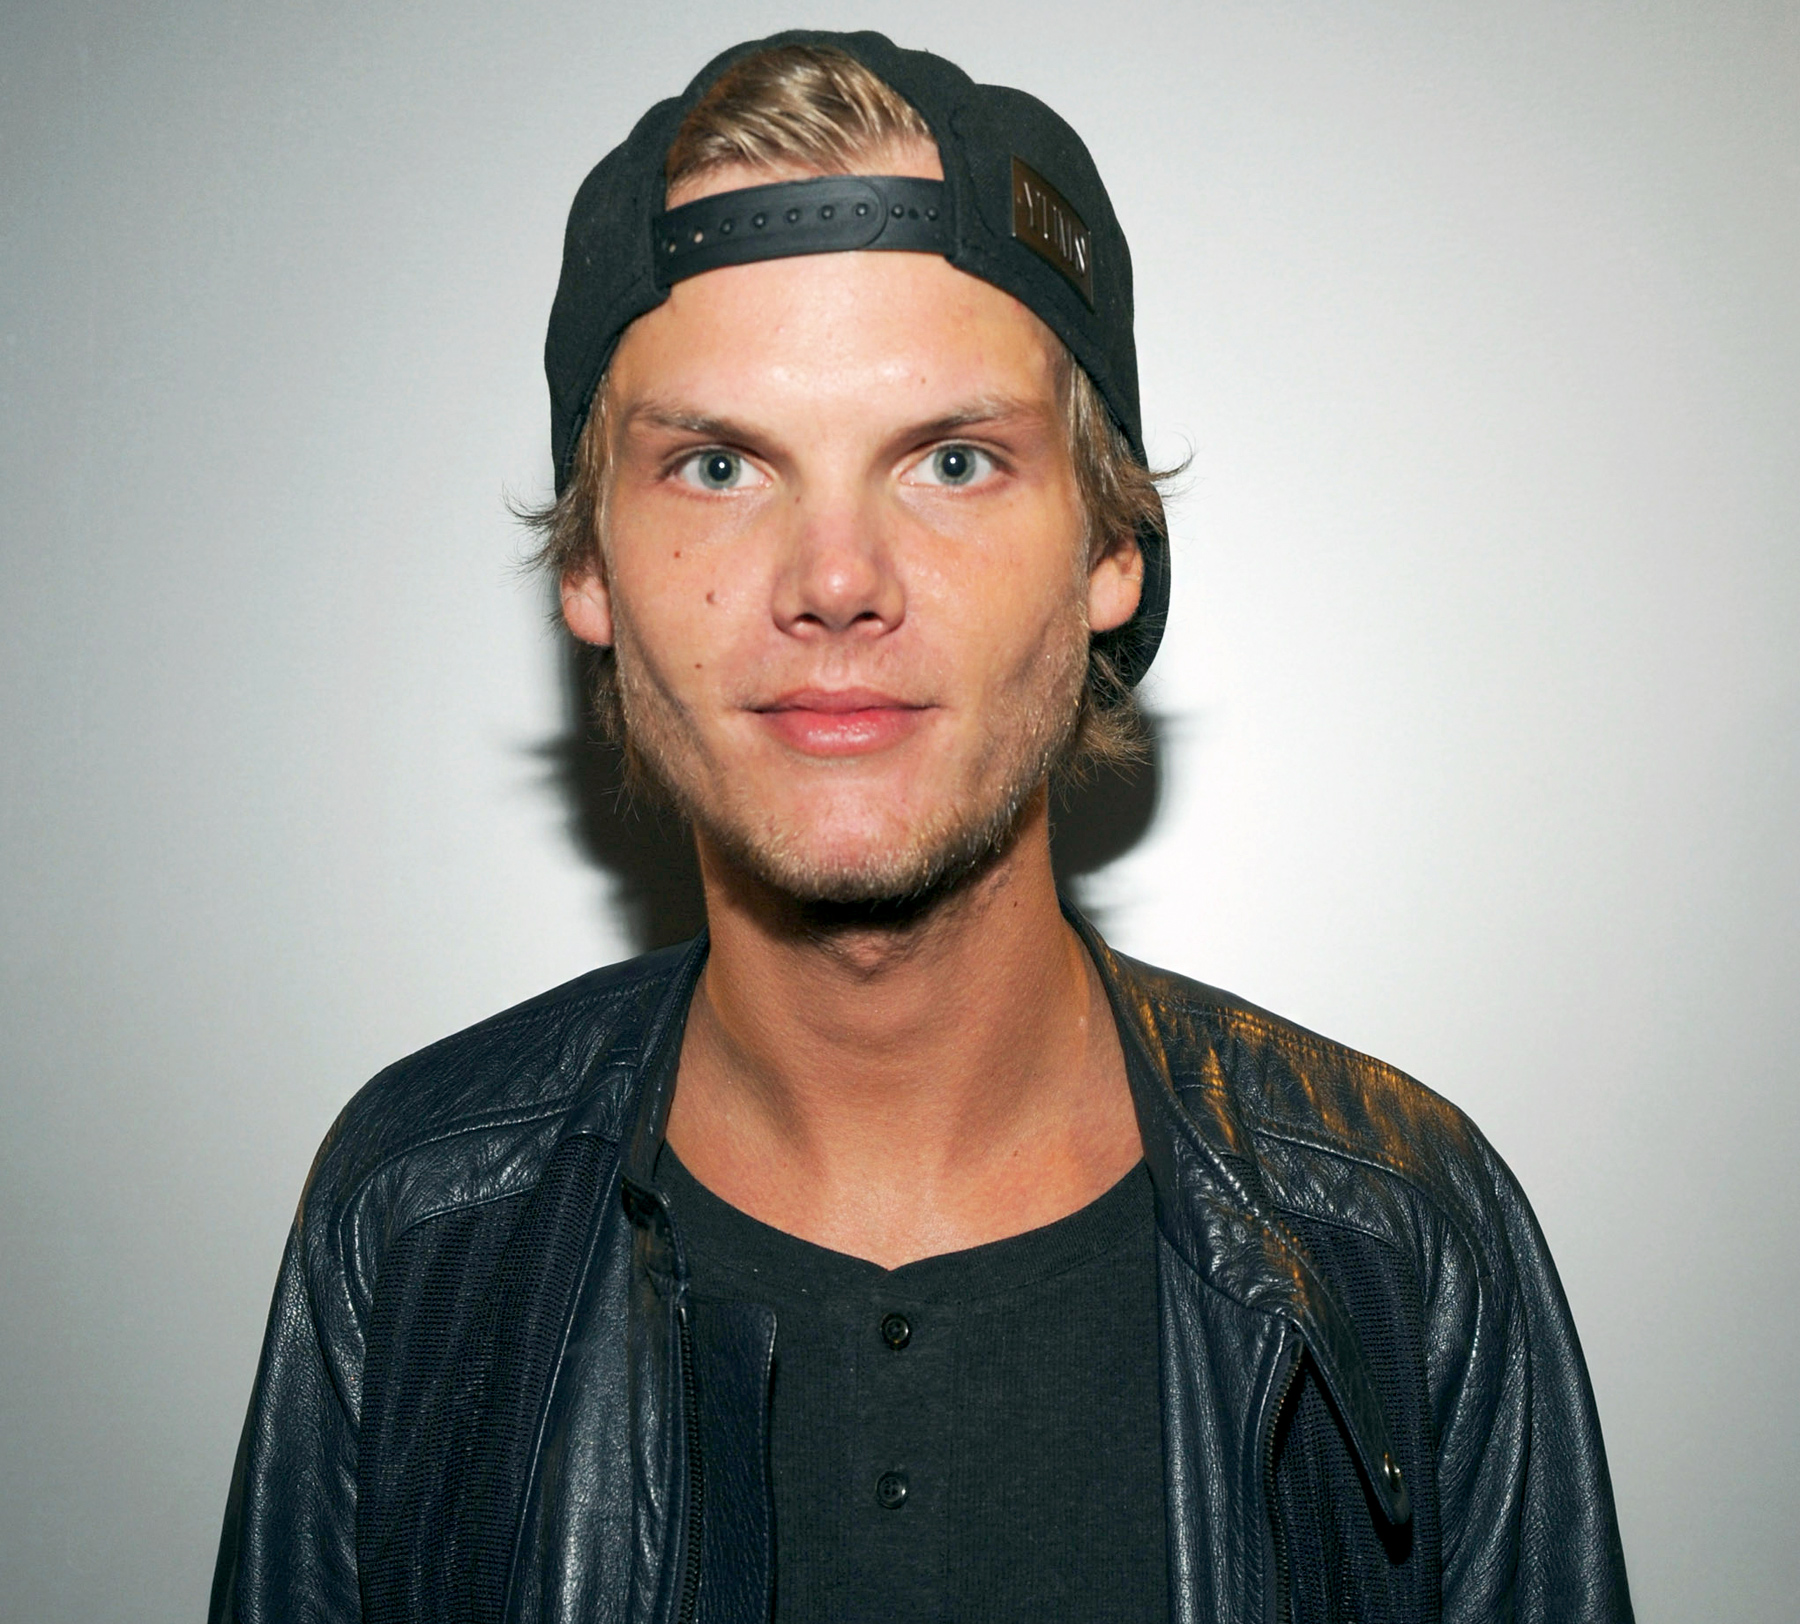 avicci - photo #11